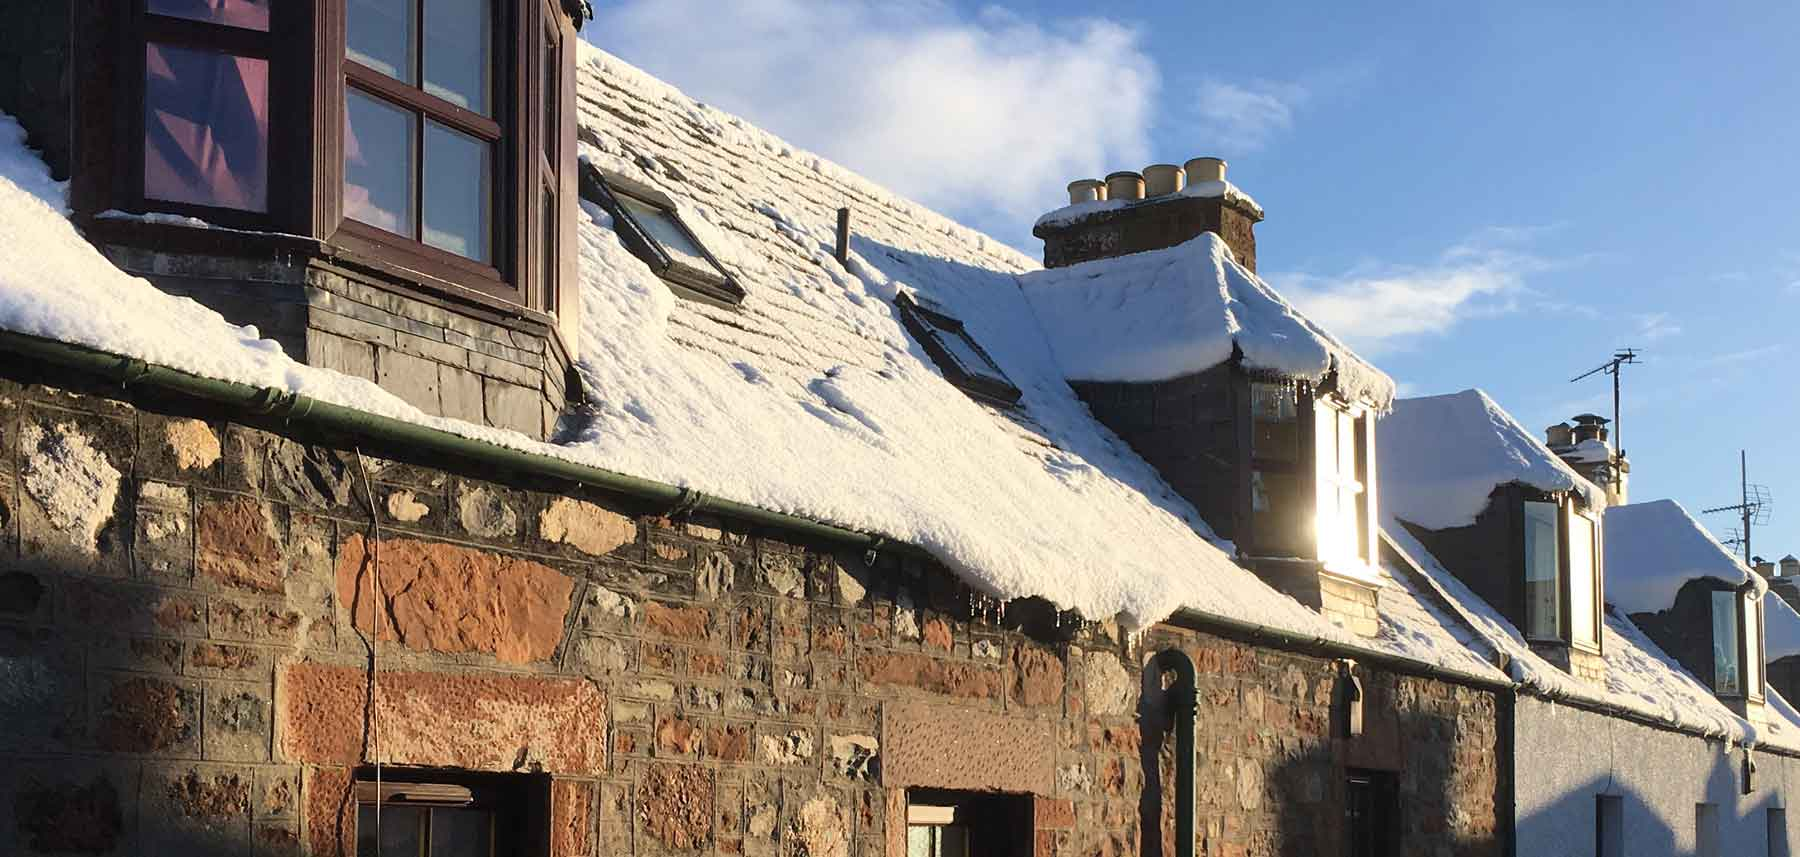 Snow on traditional roofs